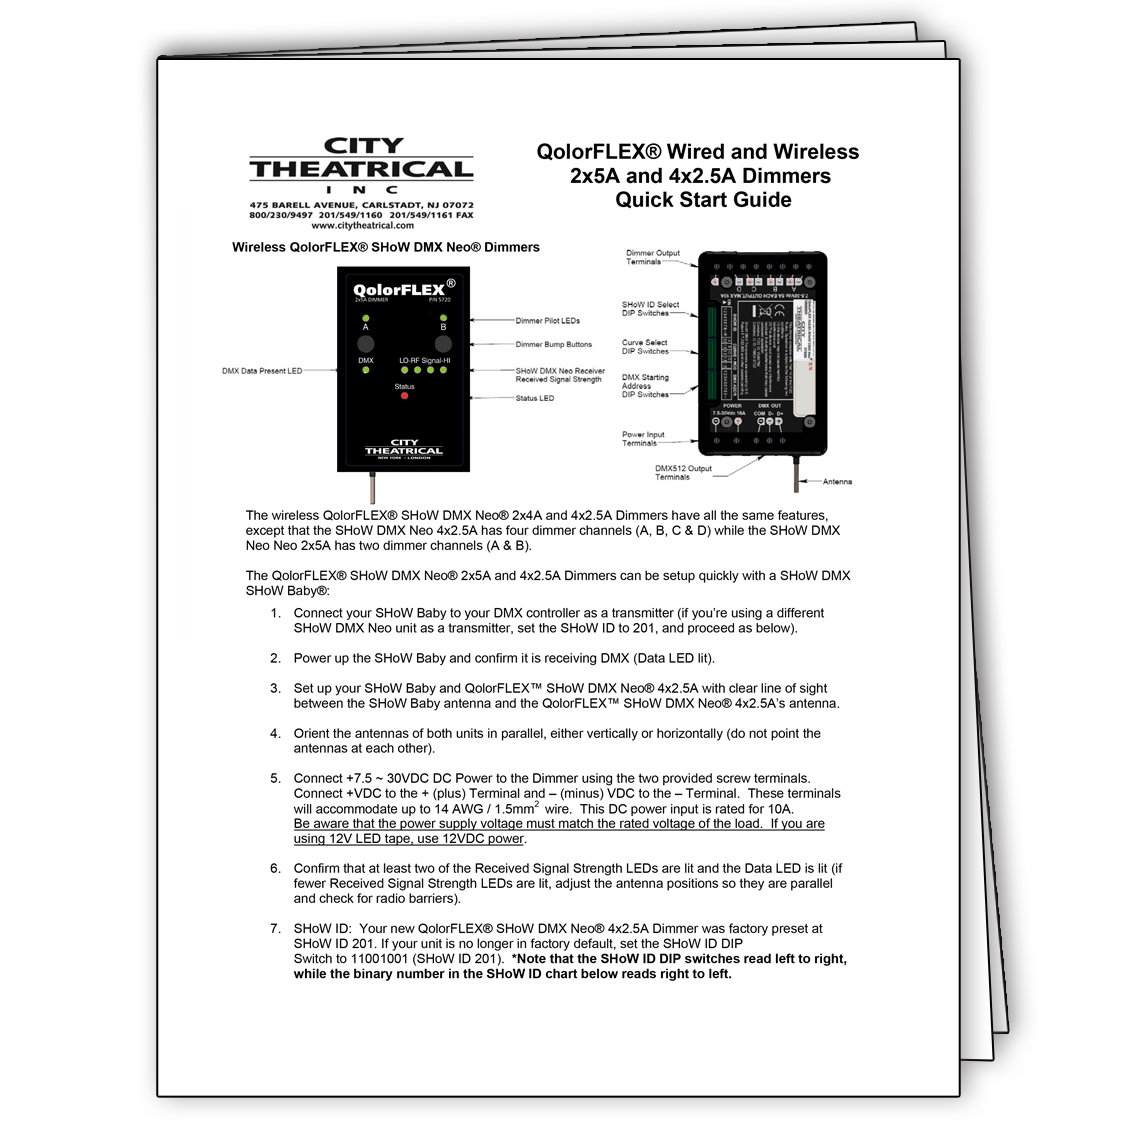 Quick Start Guide for QolorFLEX 2x5A and 4x2-5A Wired and Wireless Dimmers